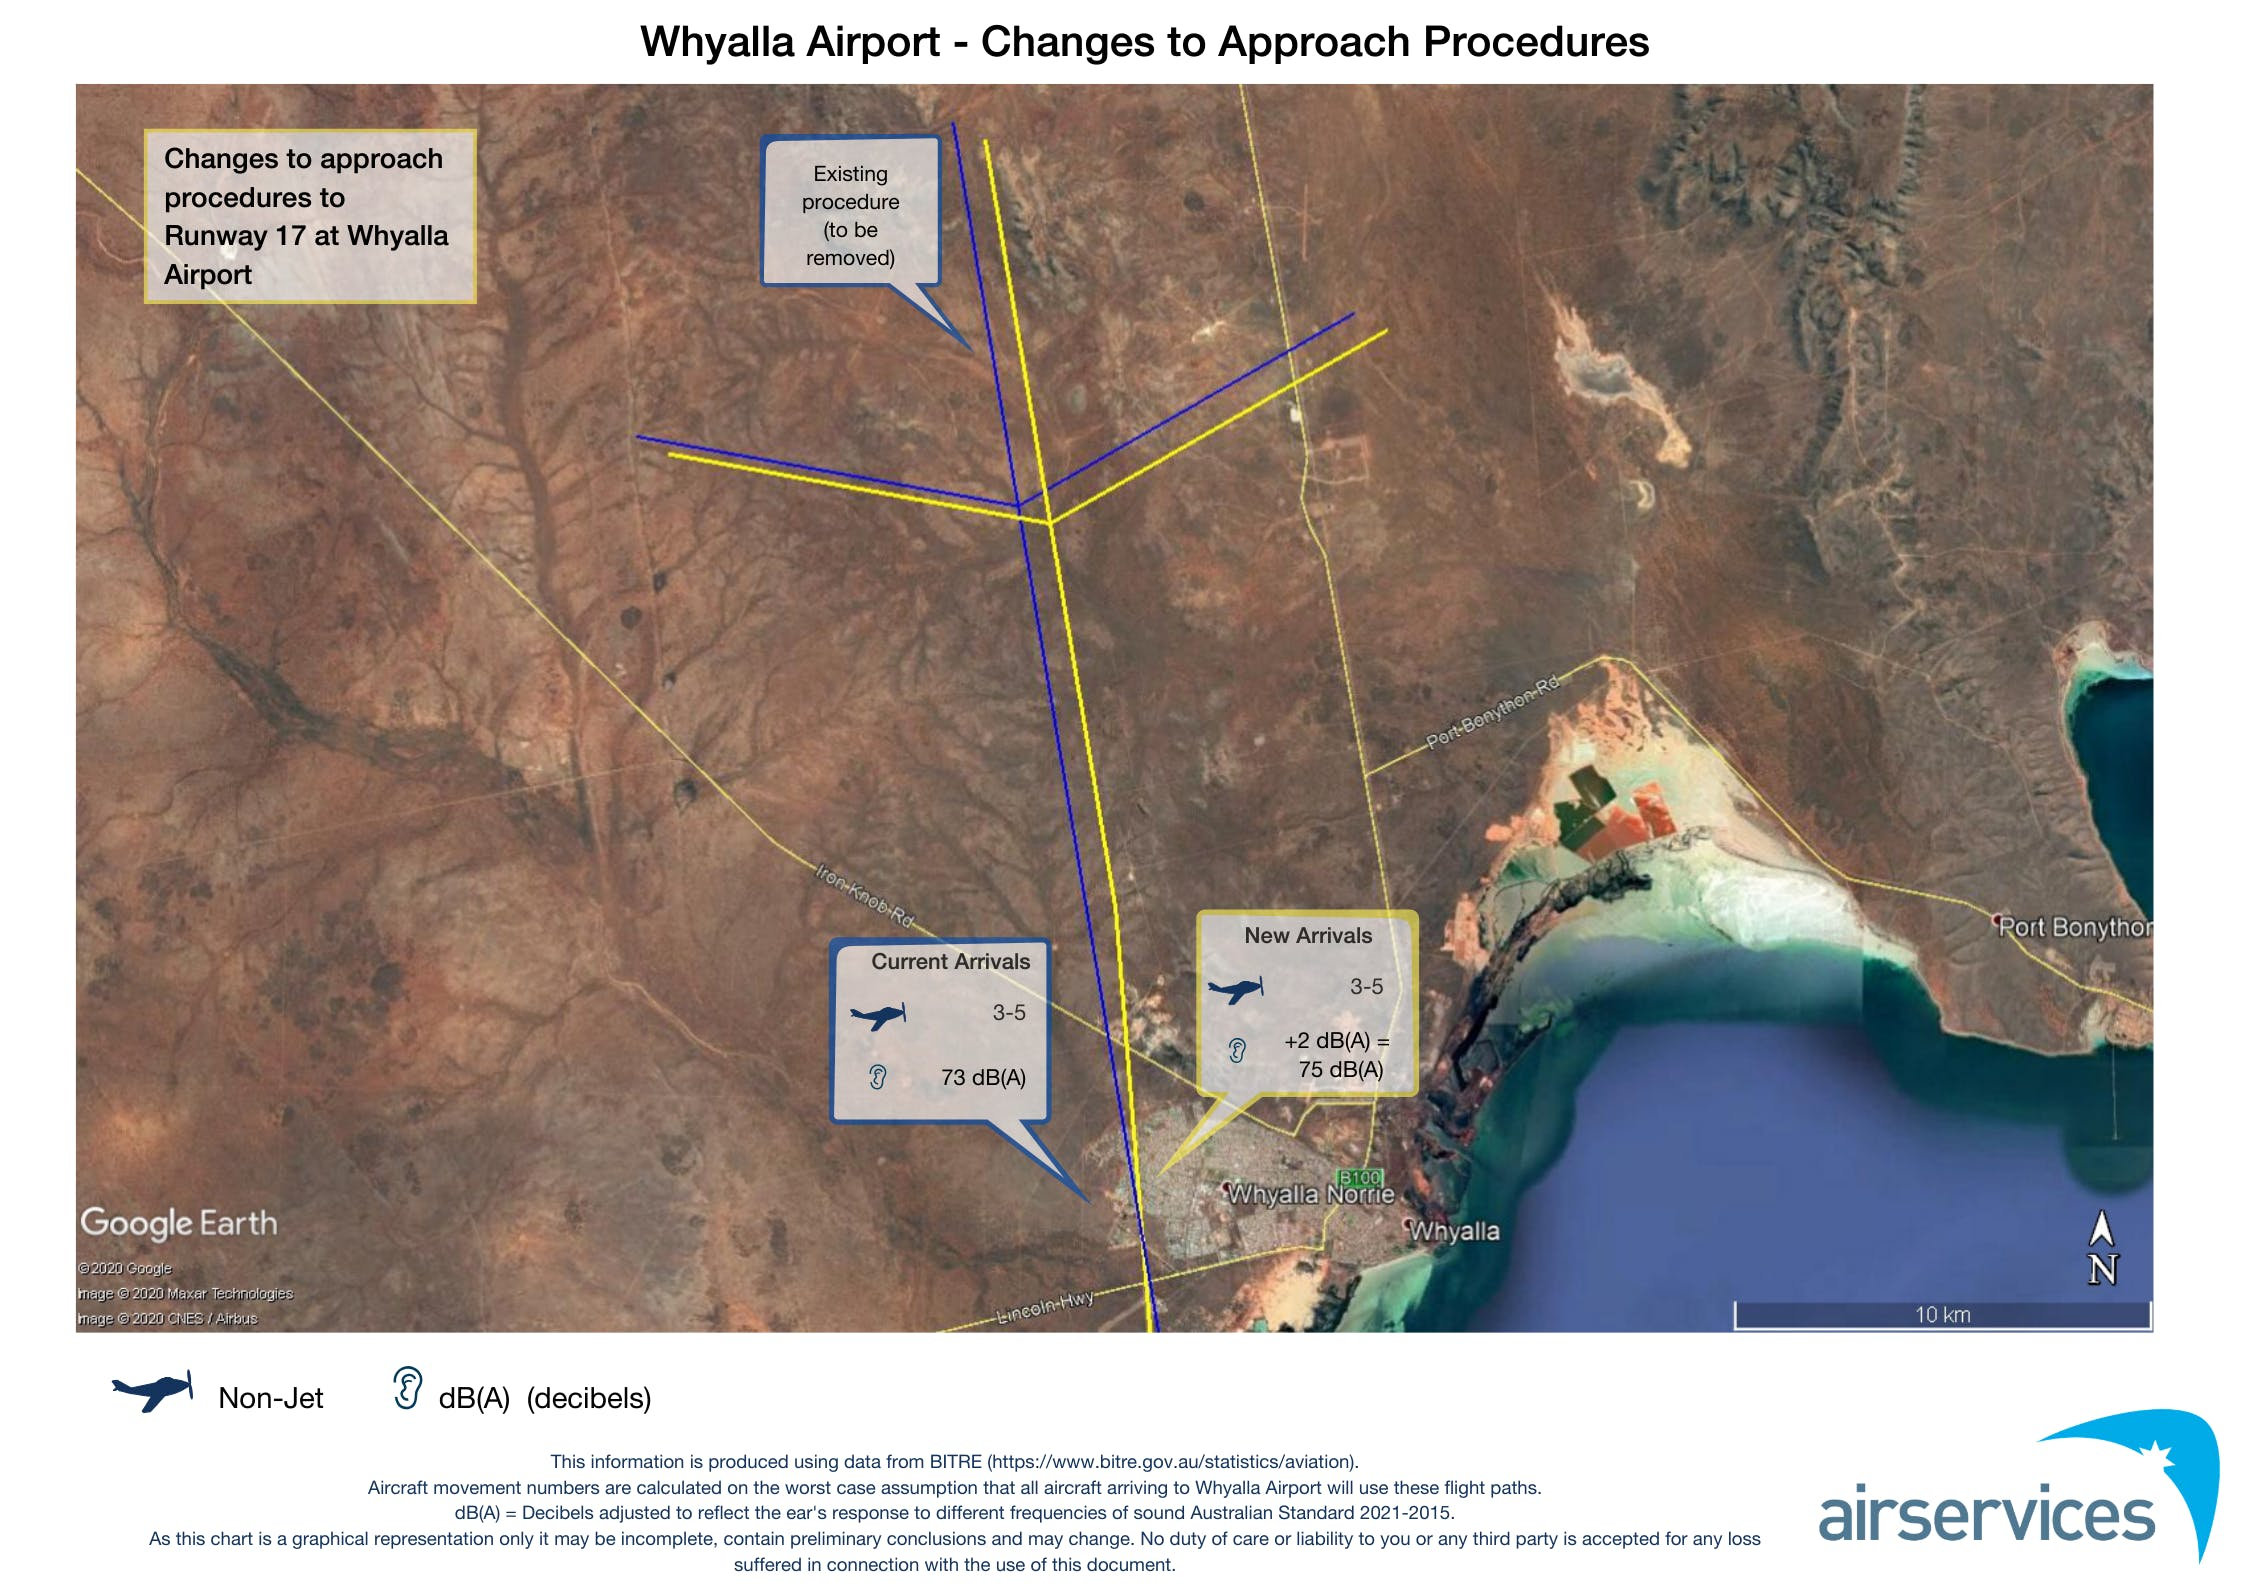 Whyalla Airport Changes to Approach Procedures